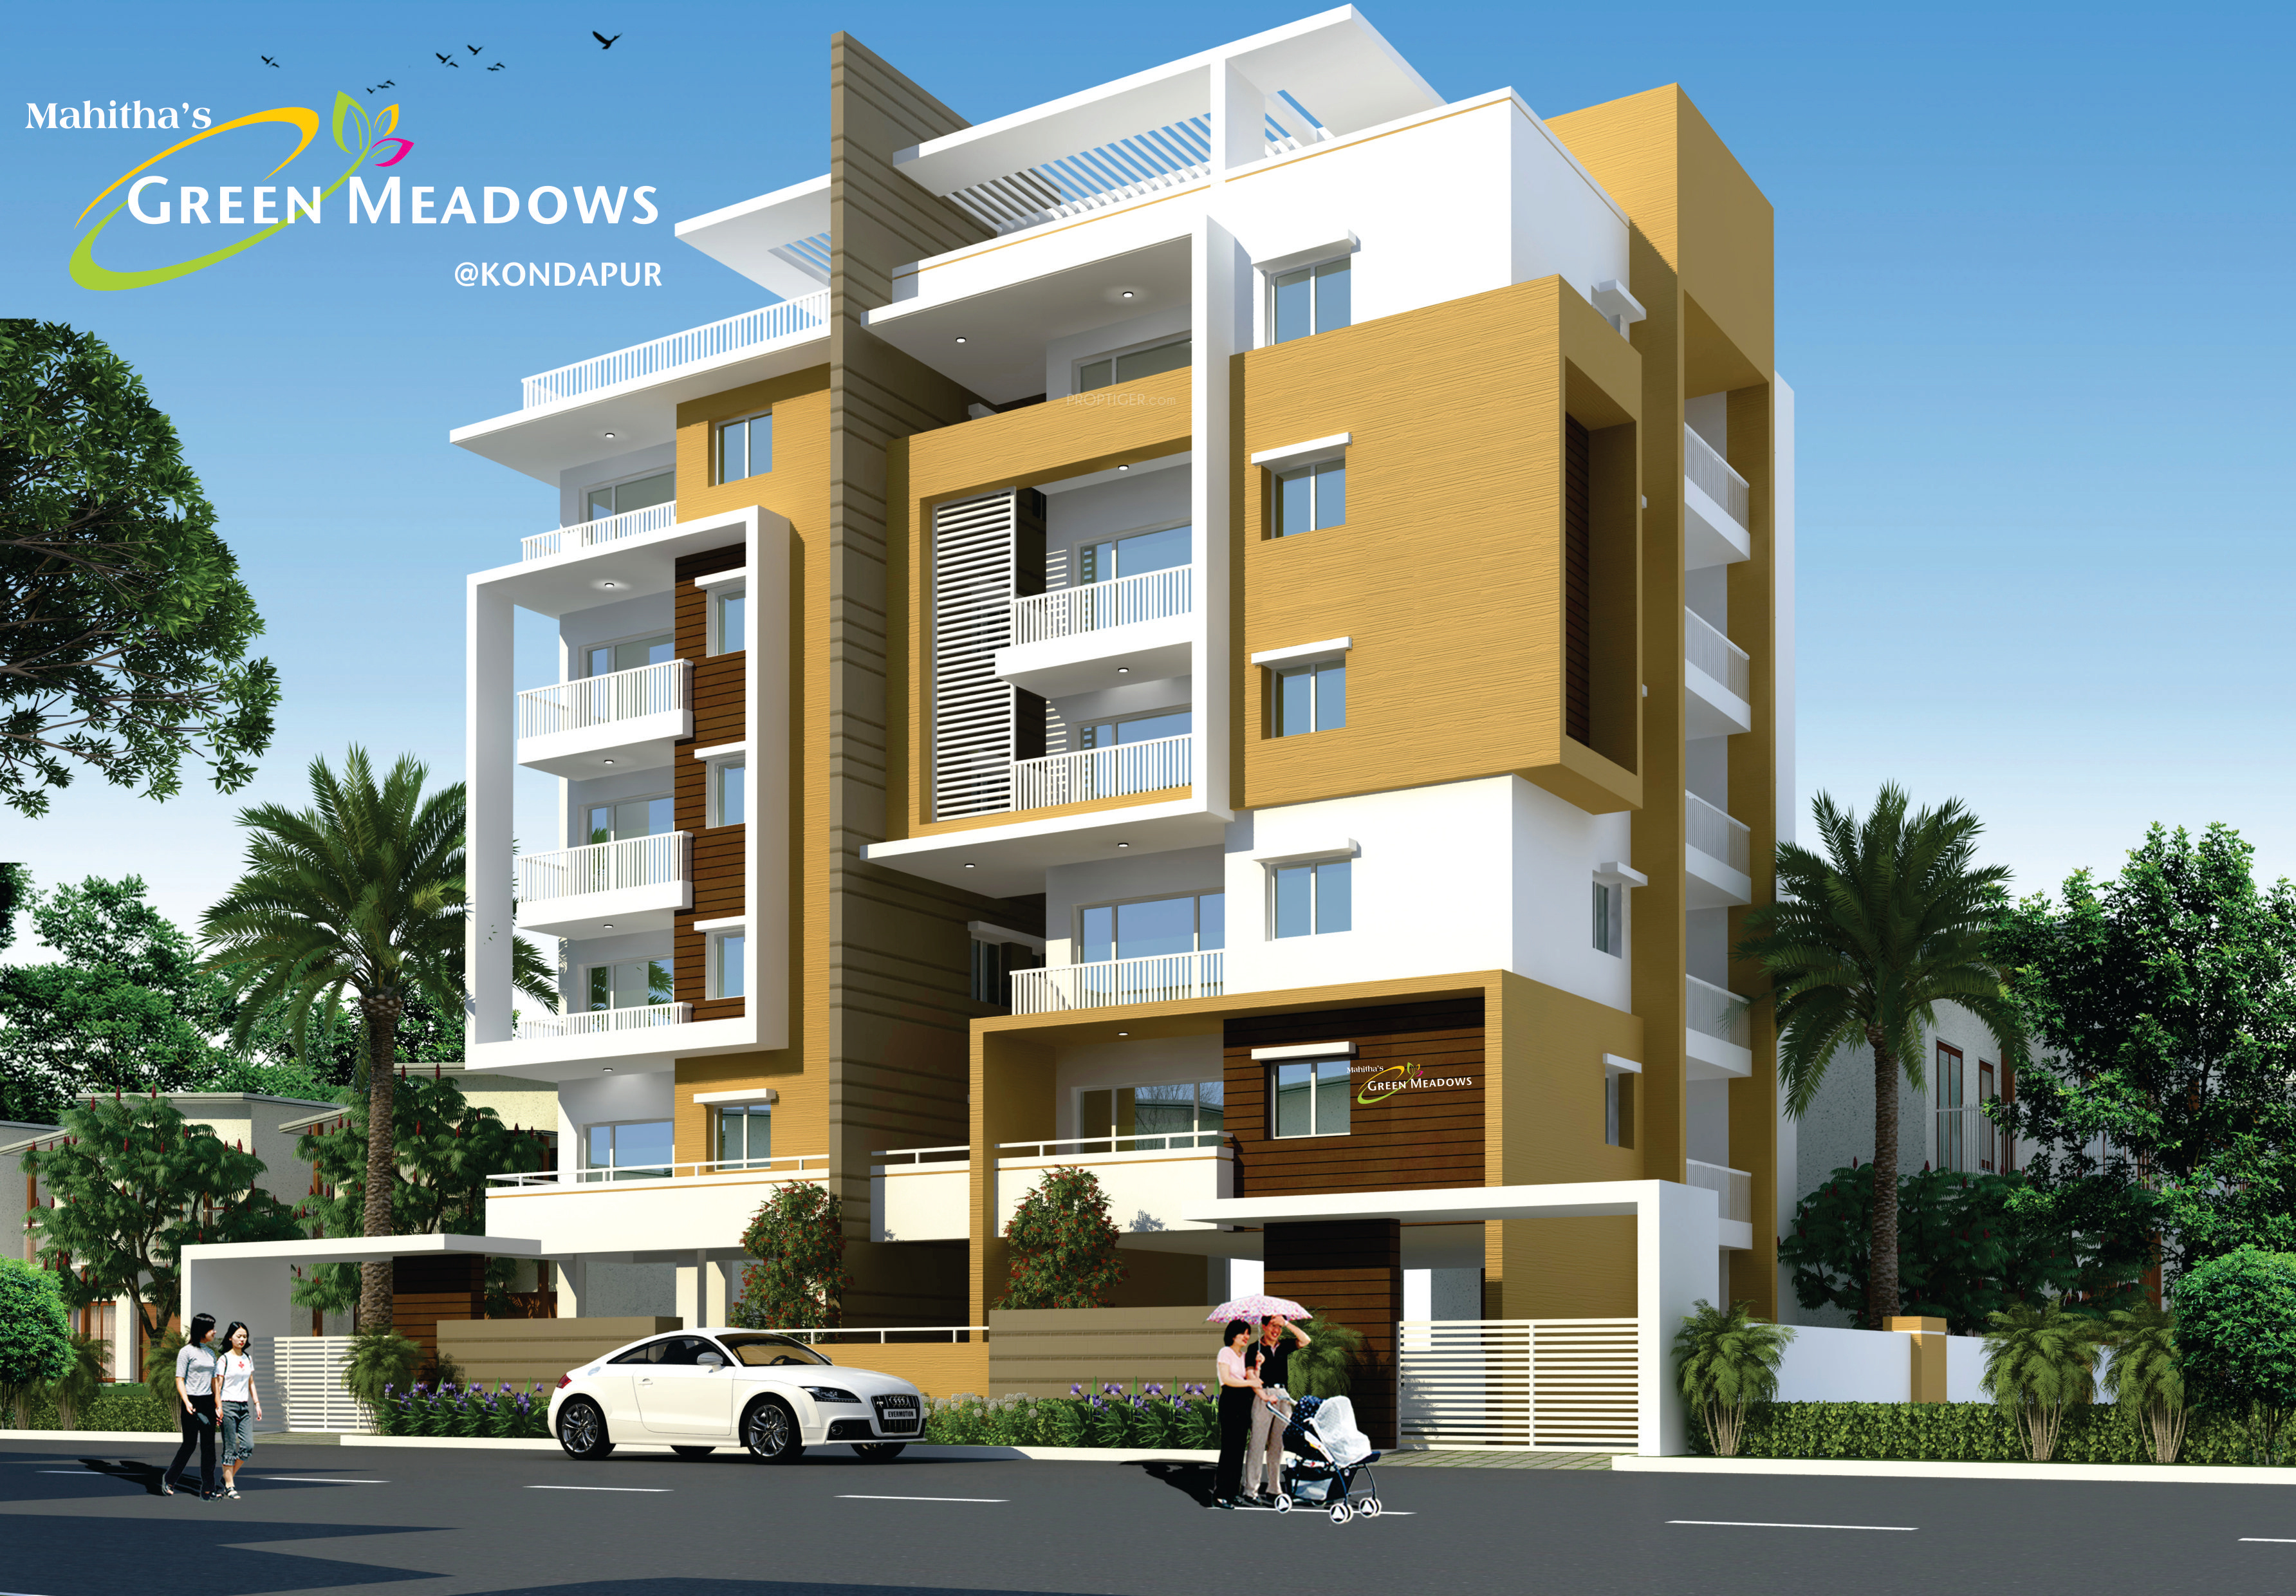 Sree Mahitha Green Meadows In Kondapur Hyderabad Price